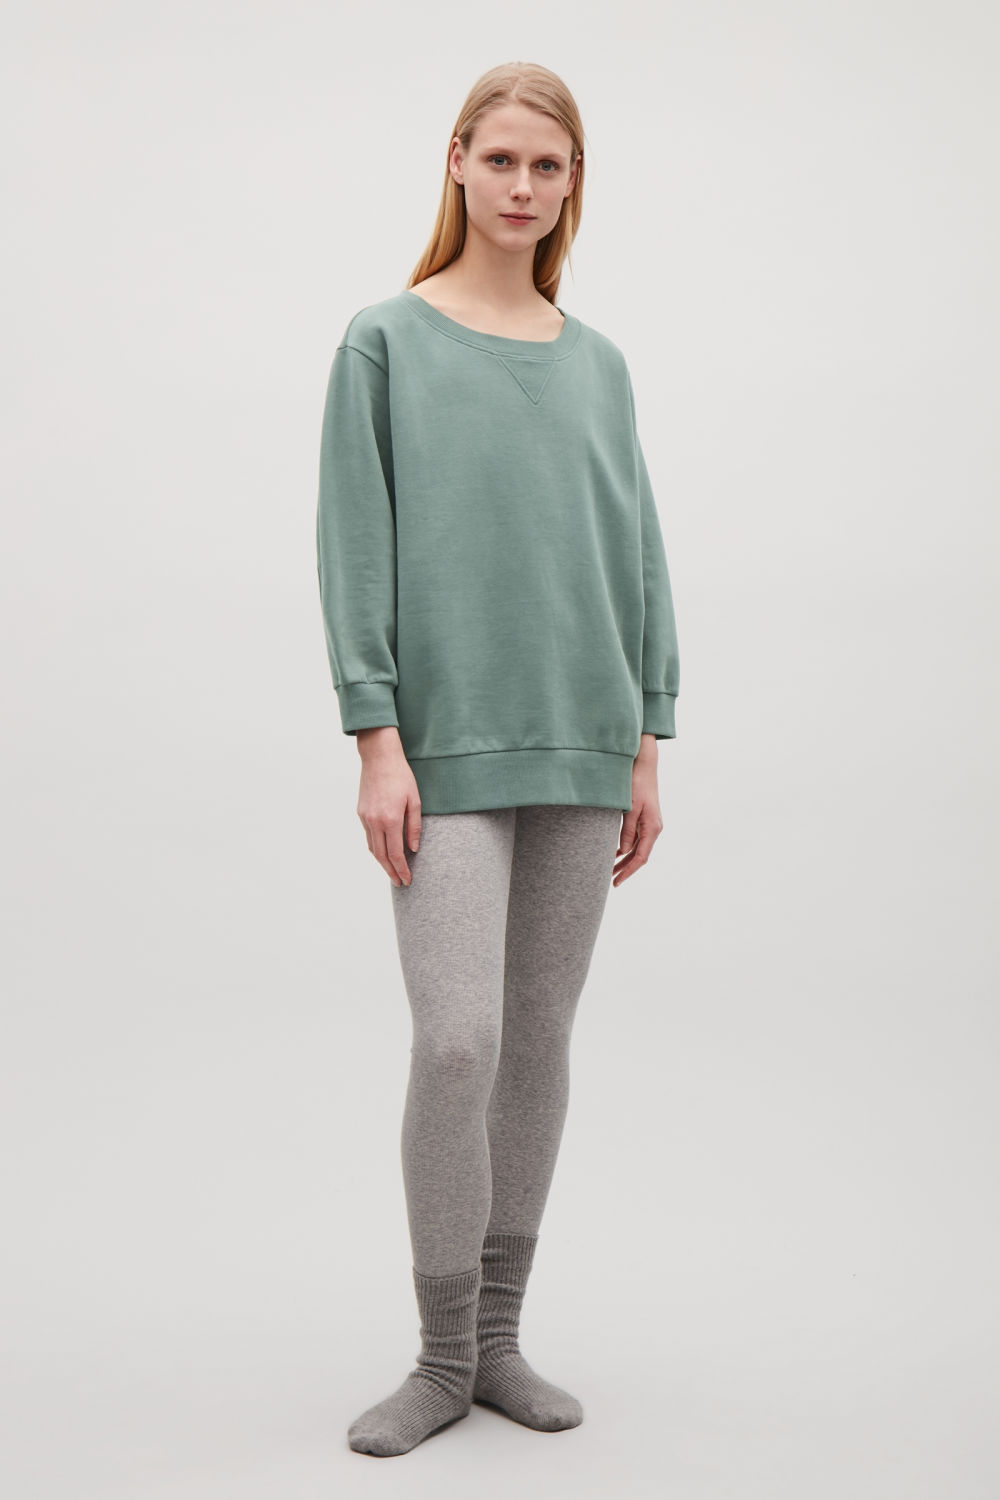 SWEATSHIRT WITH SHAPED SLEEVES